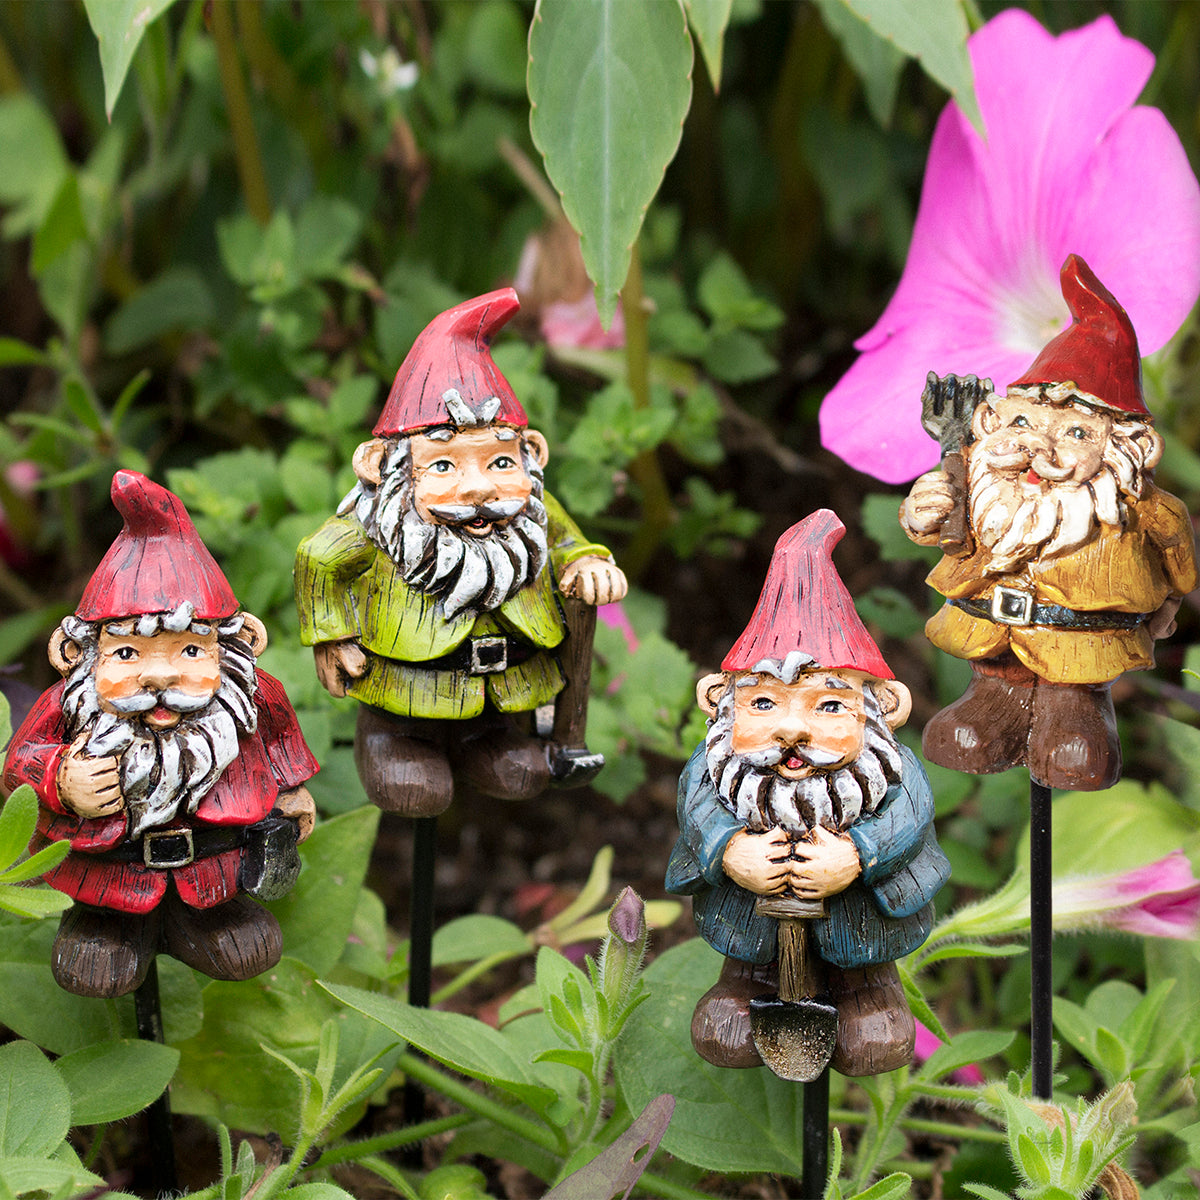 Mini Gnome Plant Pic Ass't (4 pc set)